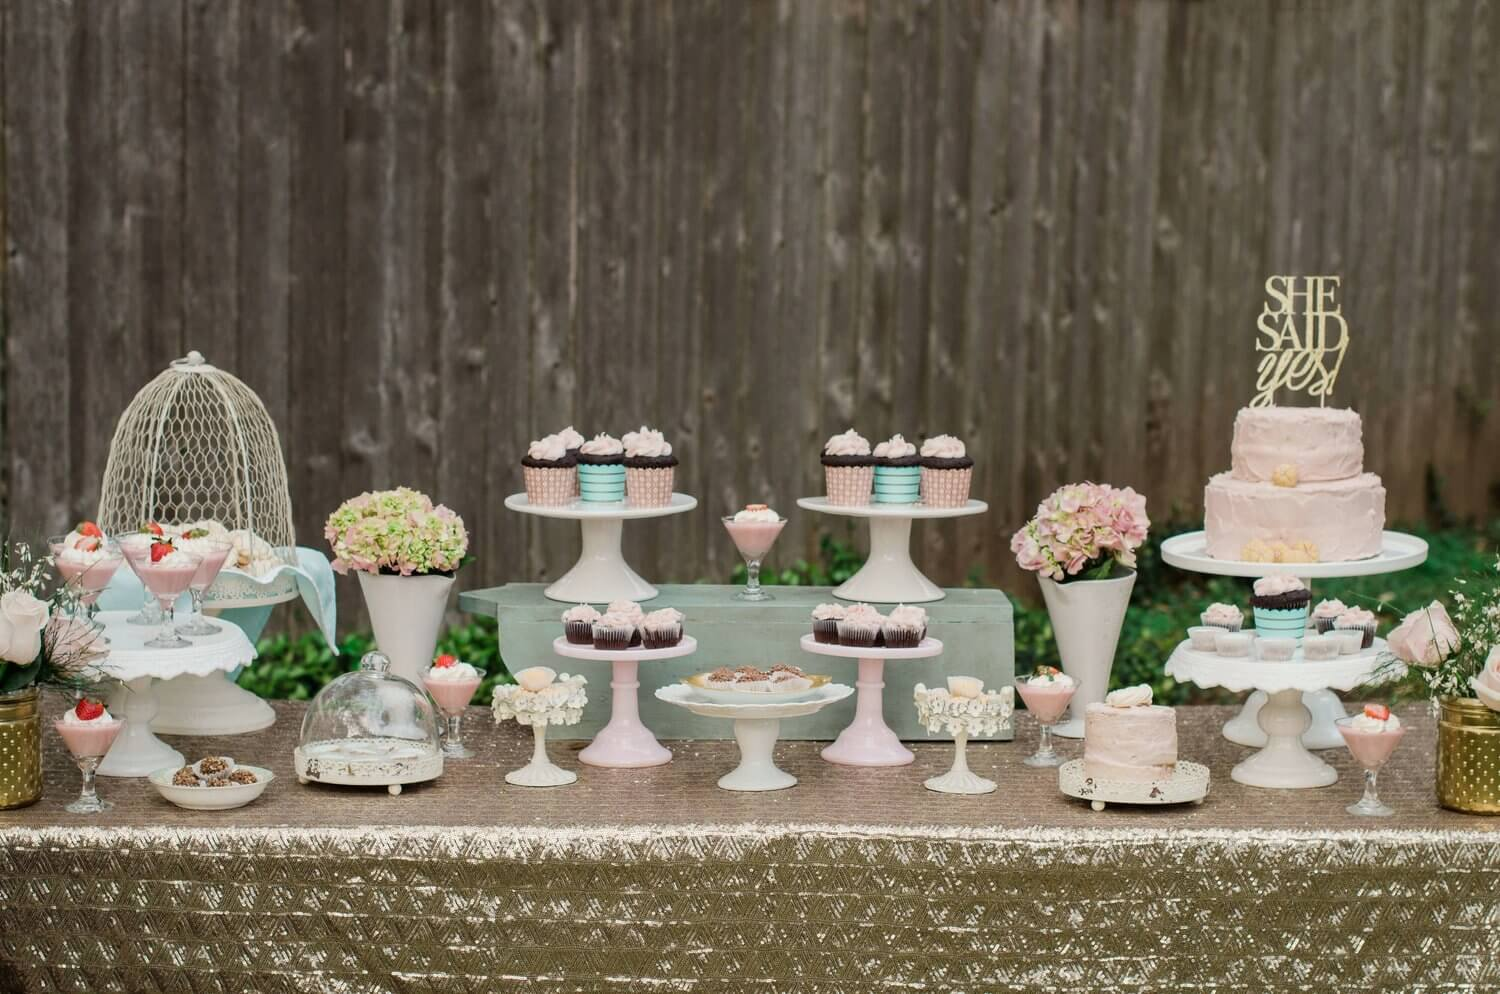 She Said Yes / Bridal Shower Dessert table ideas / Shabby Chic dessert table / Garden Shower bridal / Garden shower decor ideas / Bridal shower decor ideas / Baby shower decor ideas / Style by Carolina from MINT Event Design / www.minteventdesign.com